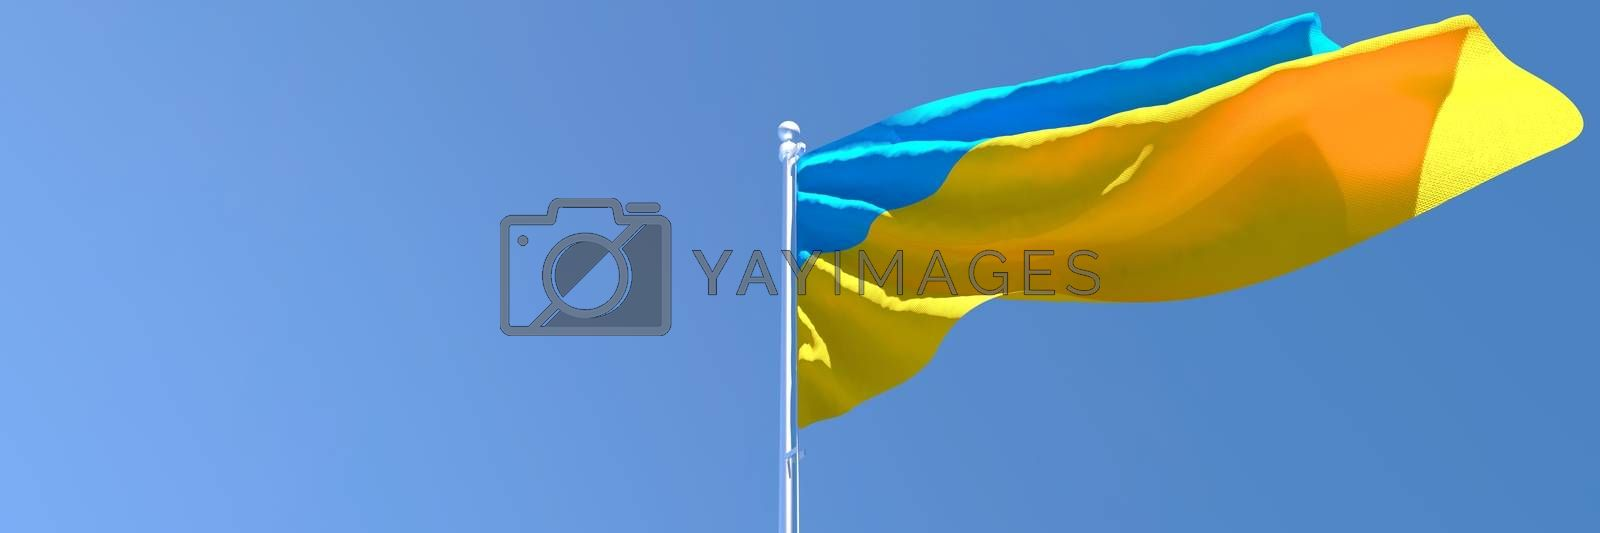 Royalty free image of 3D rendering of the national flag of Ukraine waving in the wind by butenkow